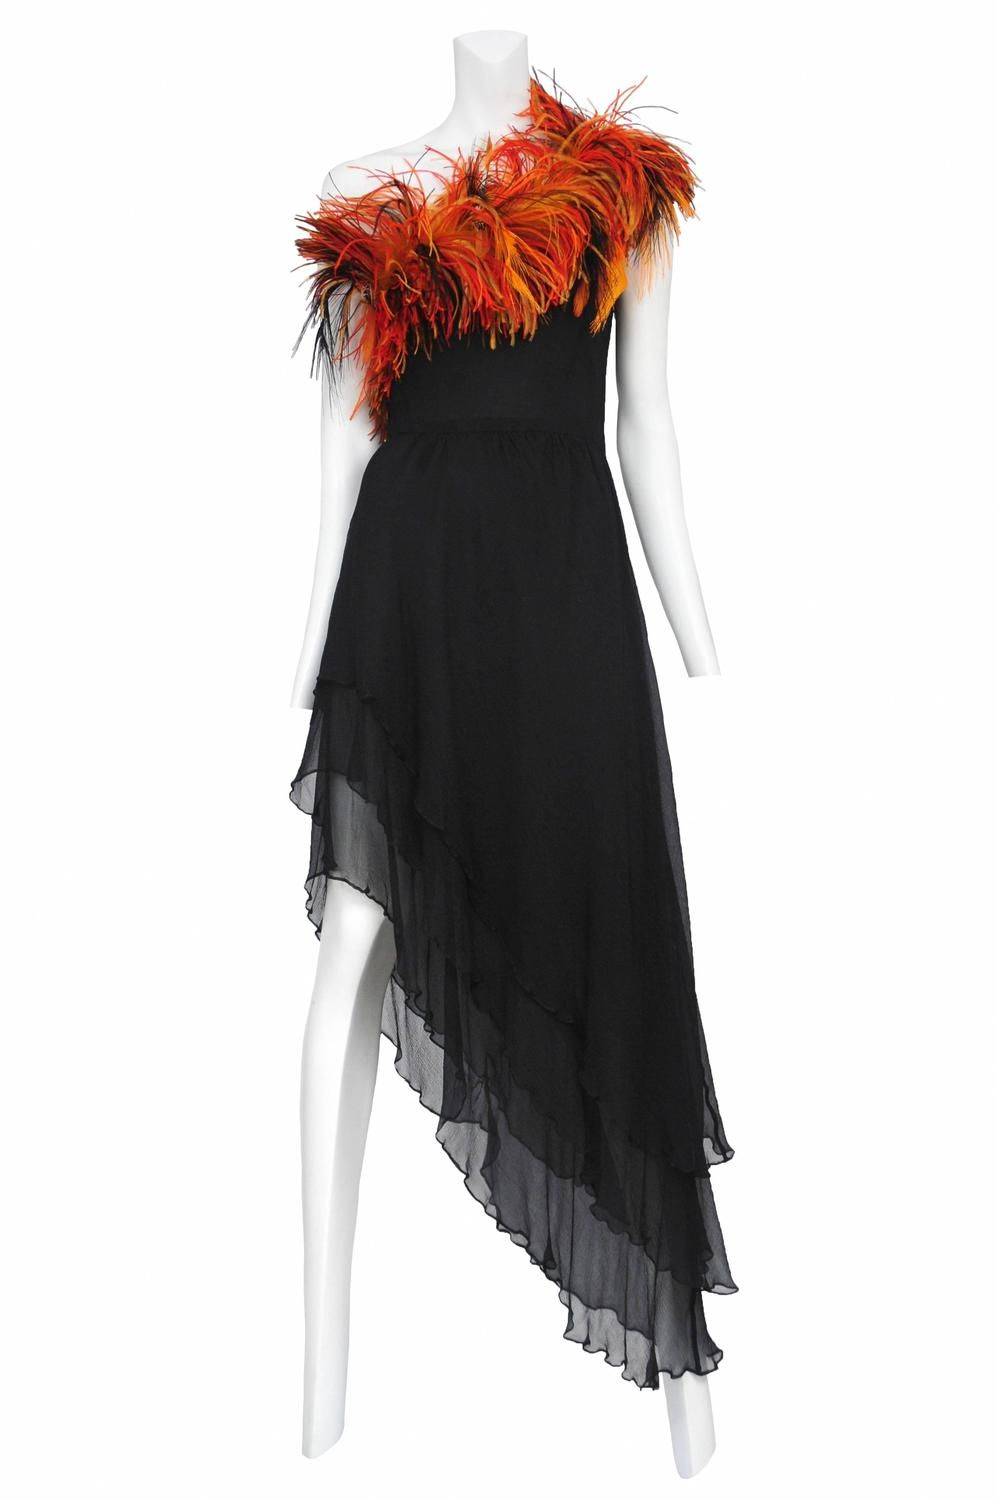 da5e3c23fc Yves Saint Laurent Ostrich Feather Disco Gown | From a collection of rare  vintage evening dresses